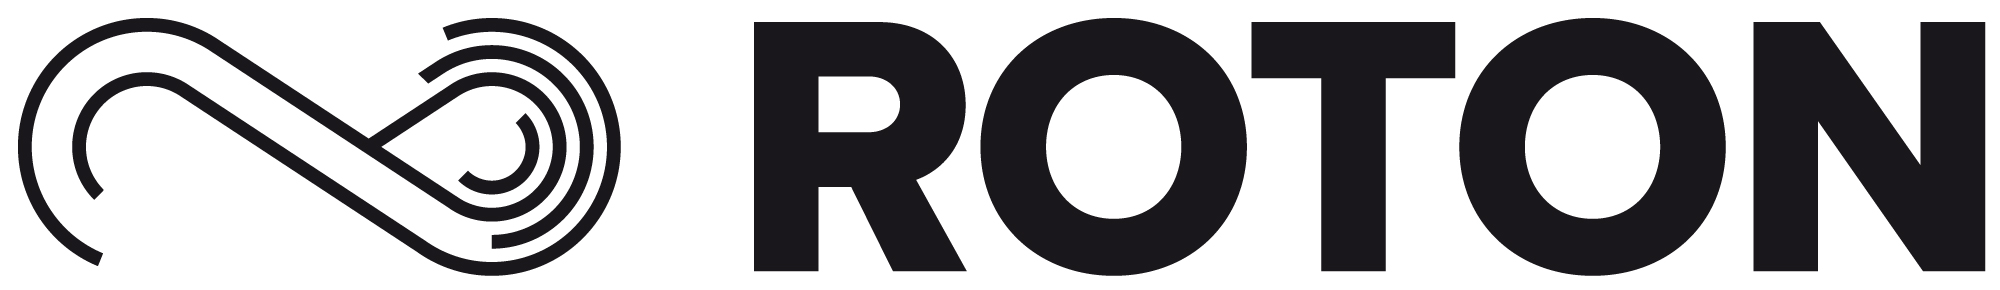 roton-logo-horizontal-black